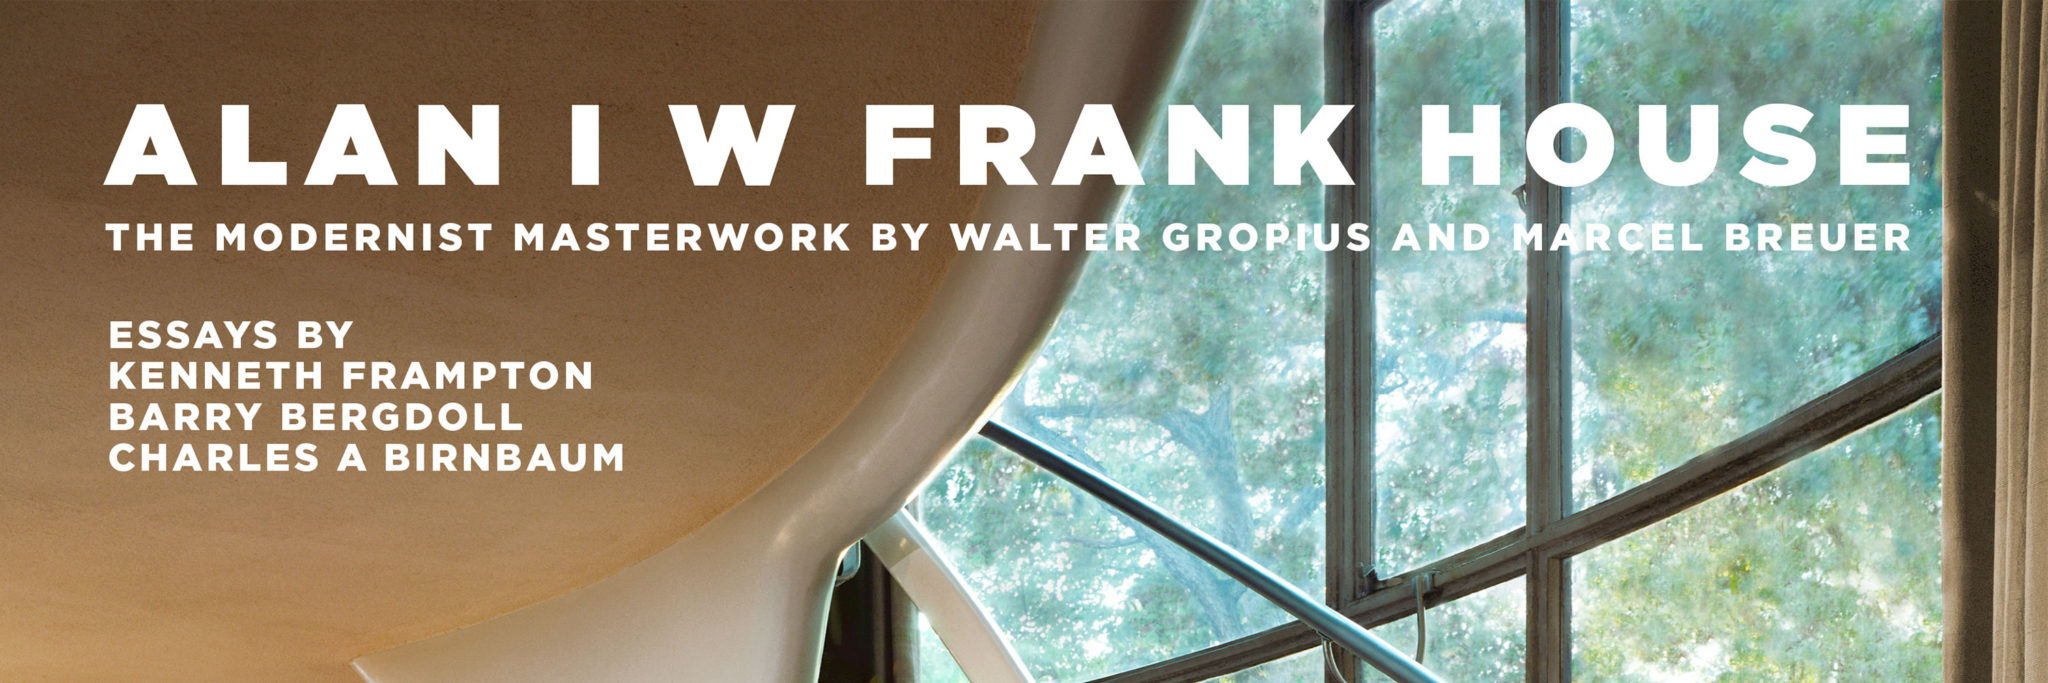 Conversation and Book Signing: The Alan I W Frank House, The Modernist Masterwork by Walter Gropius and Marcel Breuer